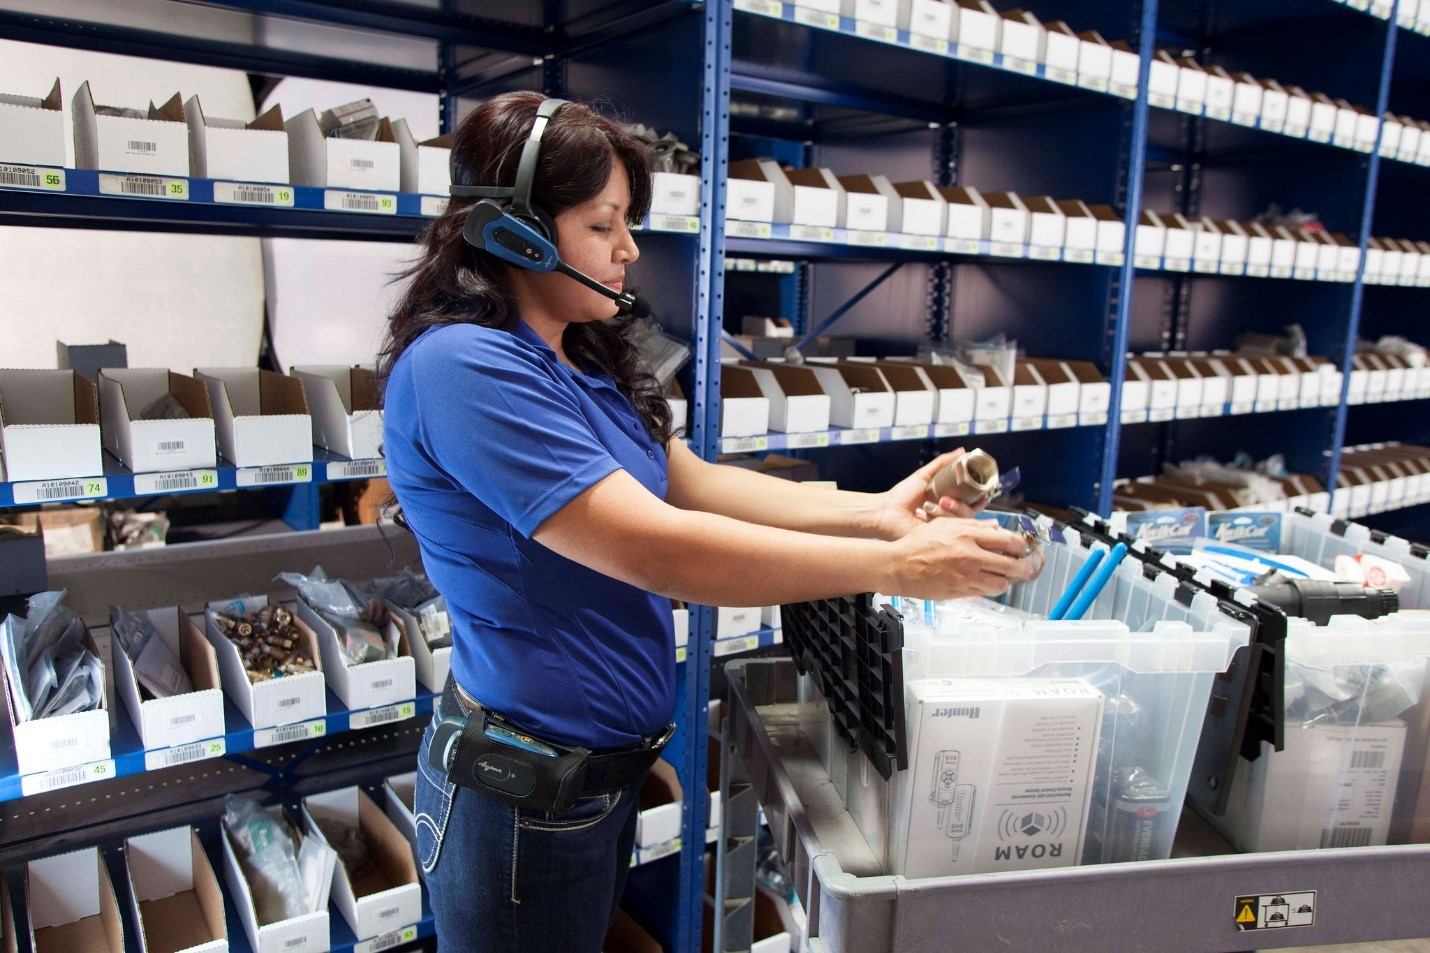 Voice in the Multi-Lingual Warehouse